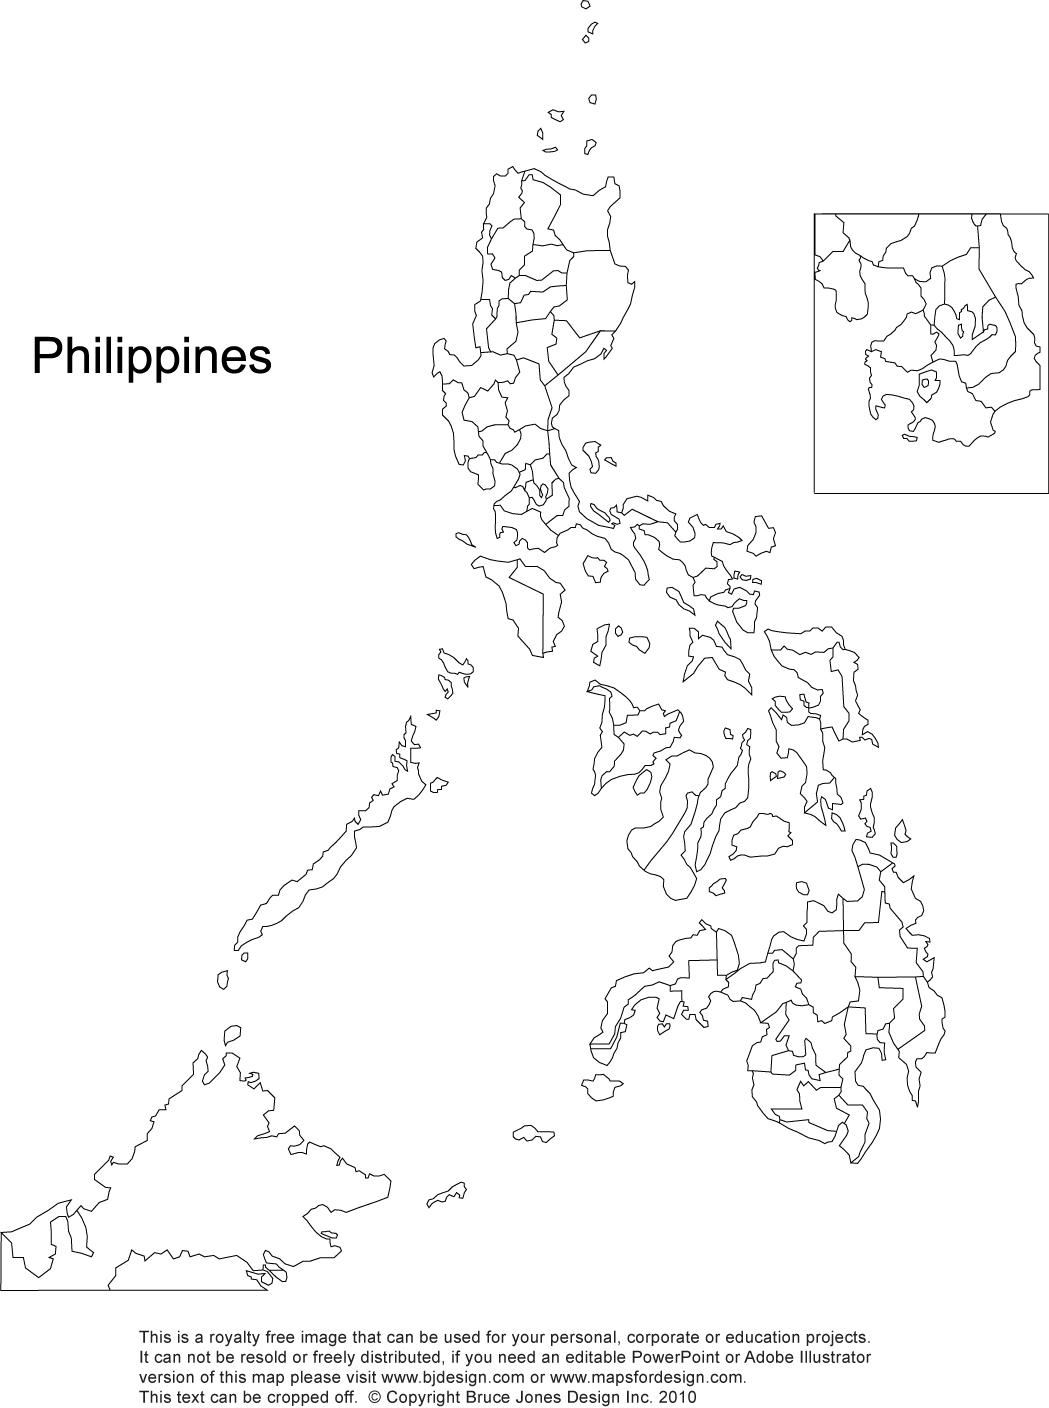 1049x1408 Philippines Printable, Blank Maps, Outline Maps Royalty Free